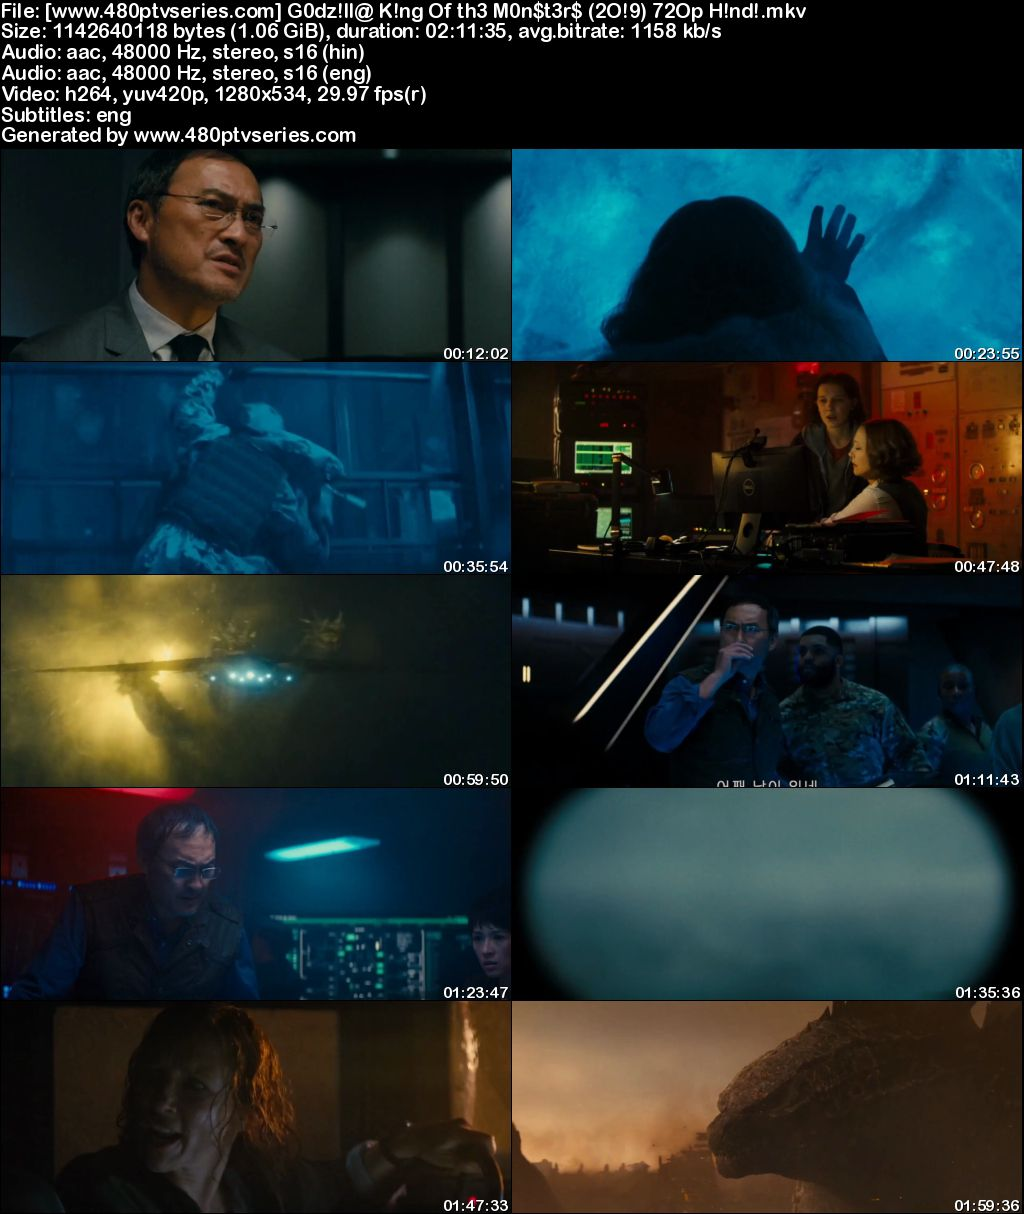 Watch Online Free Godzilla: King of the Monsters (2019) Full Movie [ Hindi + English ] 480p 720p Dual Audio HDRip (HC)